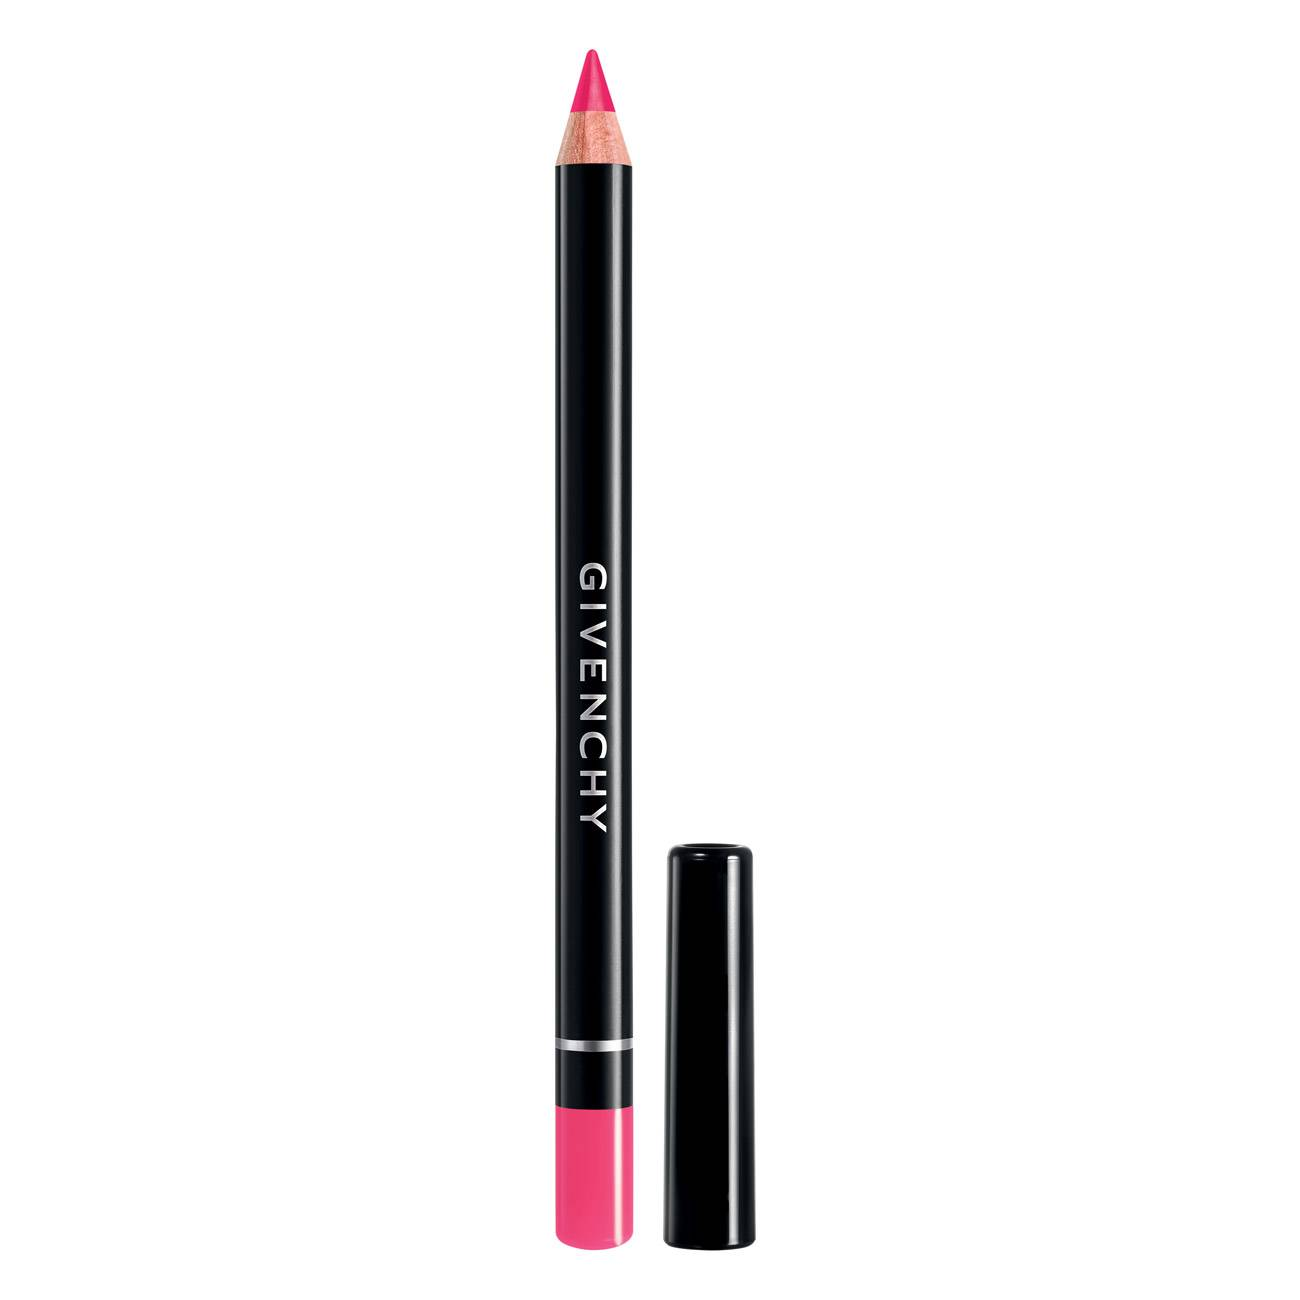 Lip Liner 1 G Fuchsia Irresistible 4 Givenchy imagine 2021 bestvalue.eu